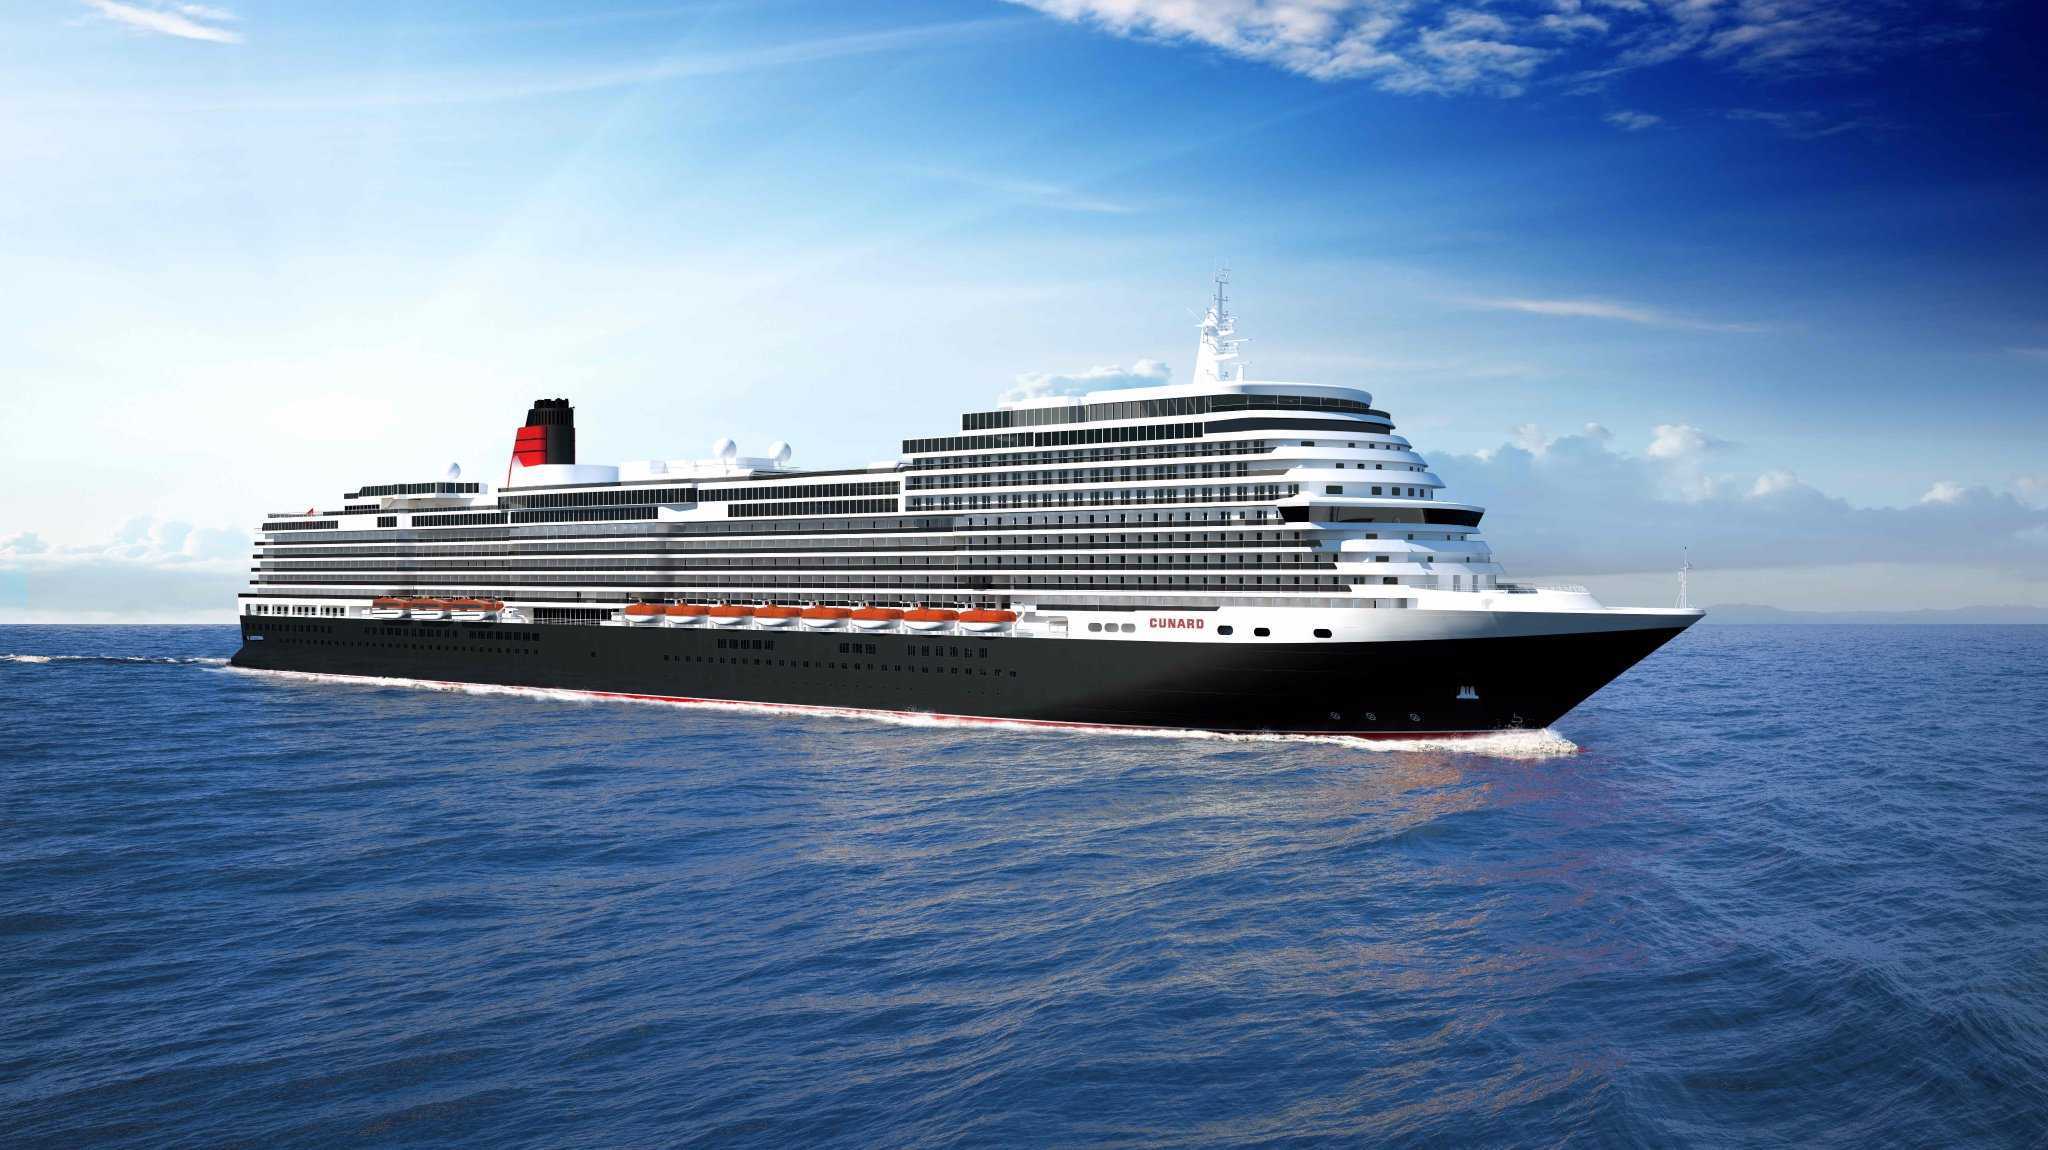 Cunard To Add Fourth Ship To Fleet - Cruise International